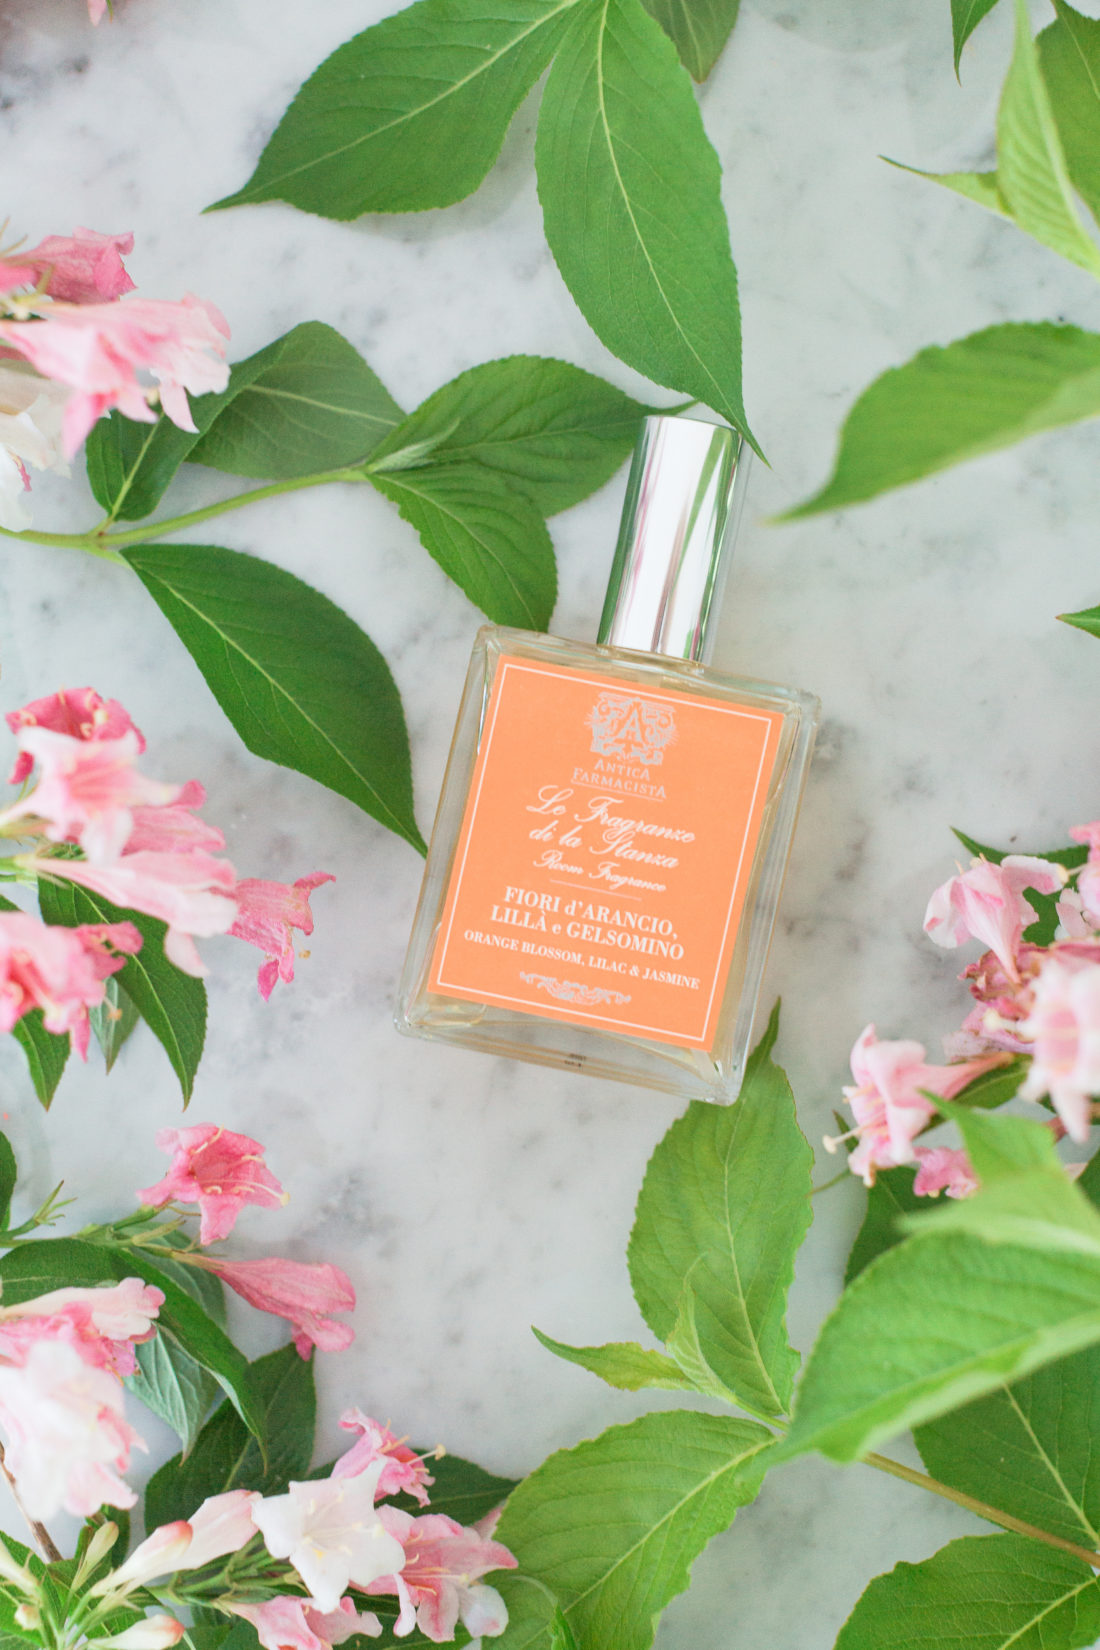 Eva Amurri Martino shares an orange blossom and jasmine room fragrance as part of her monthly obsessions roundup